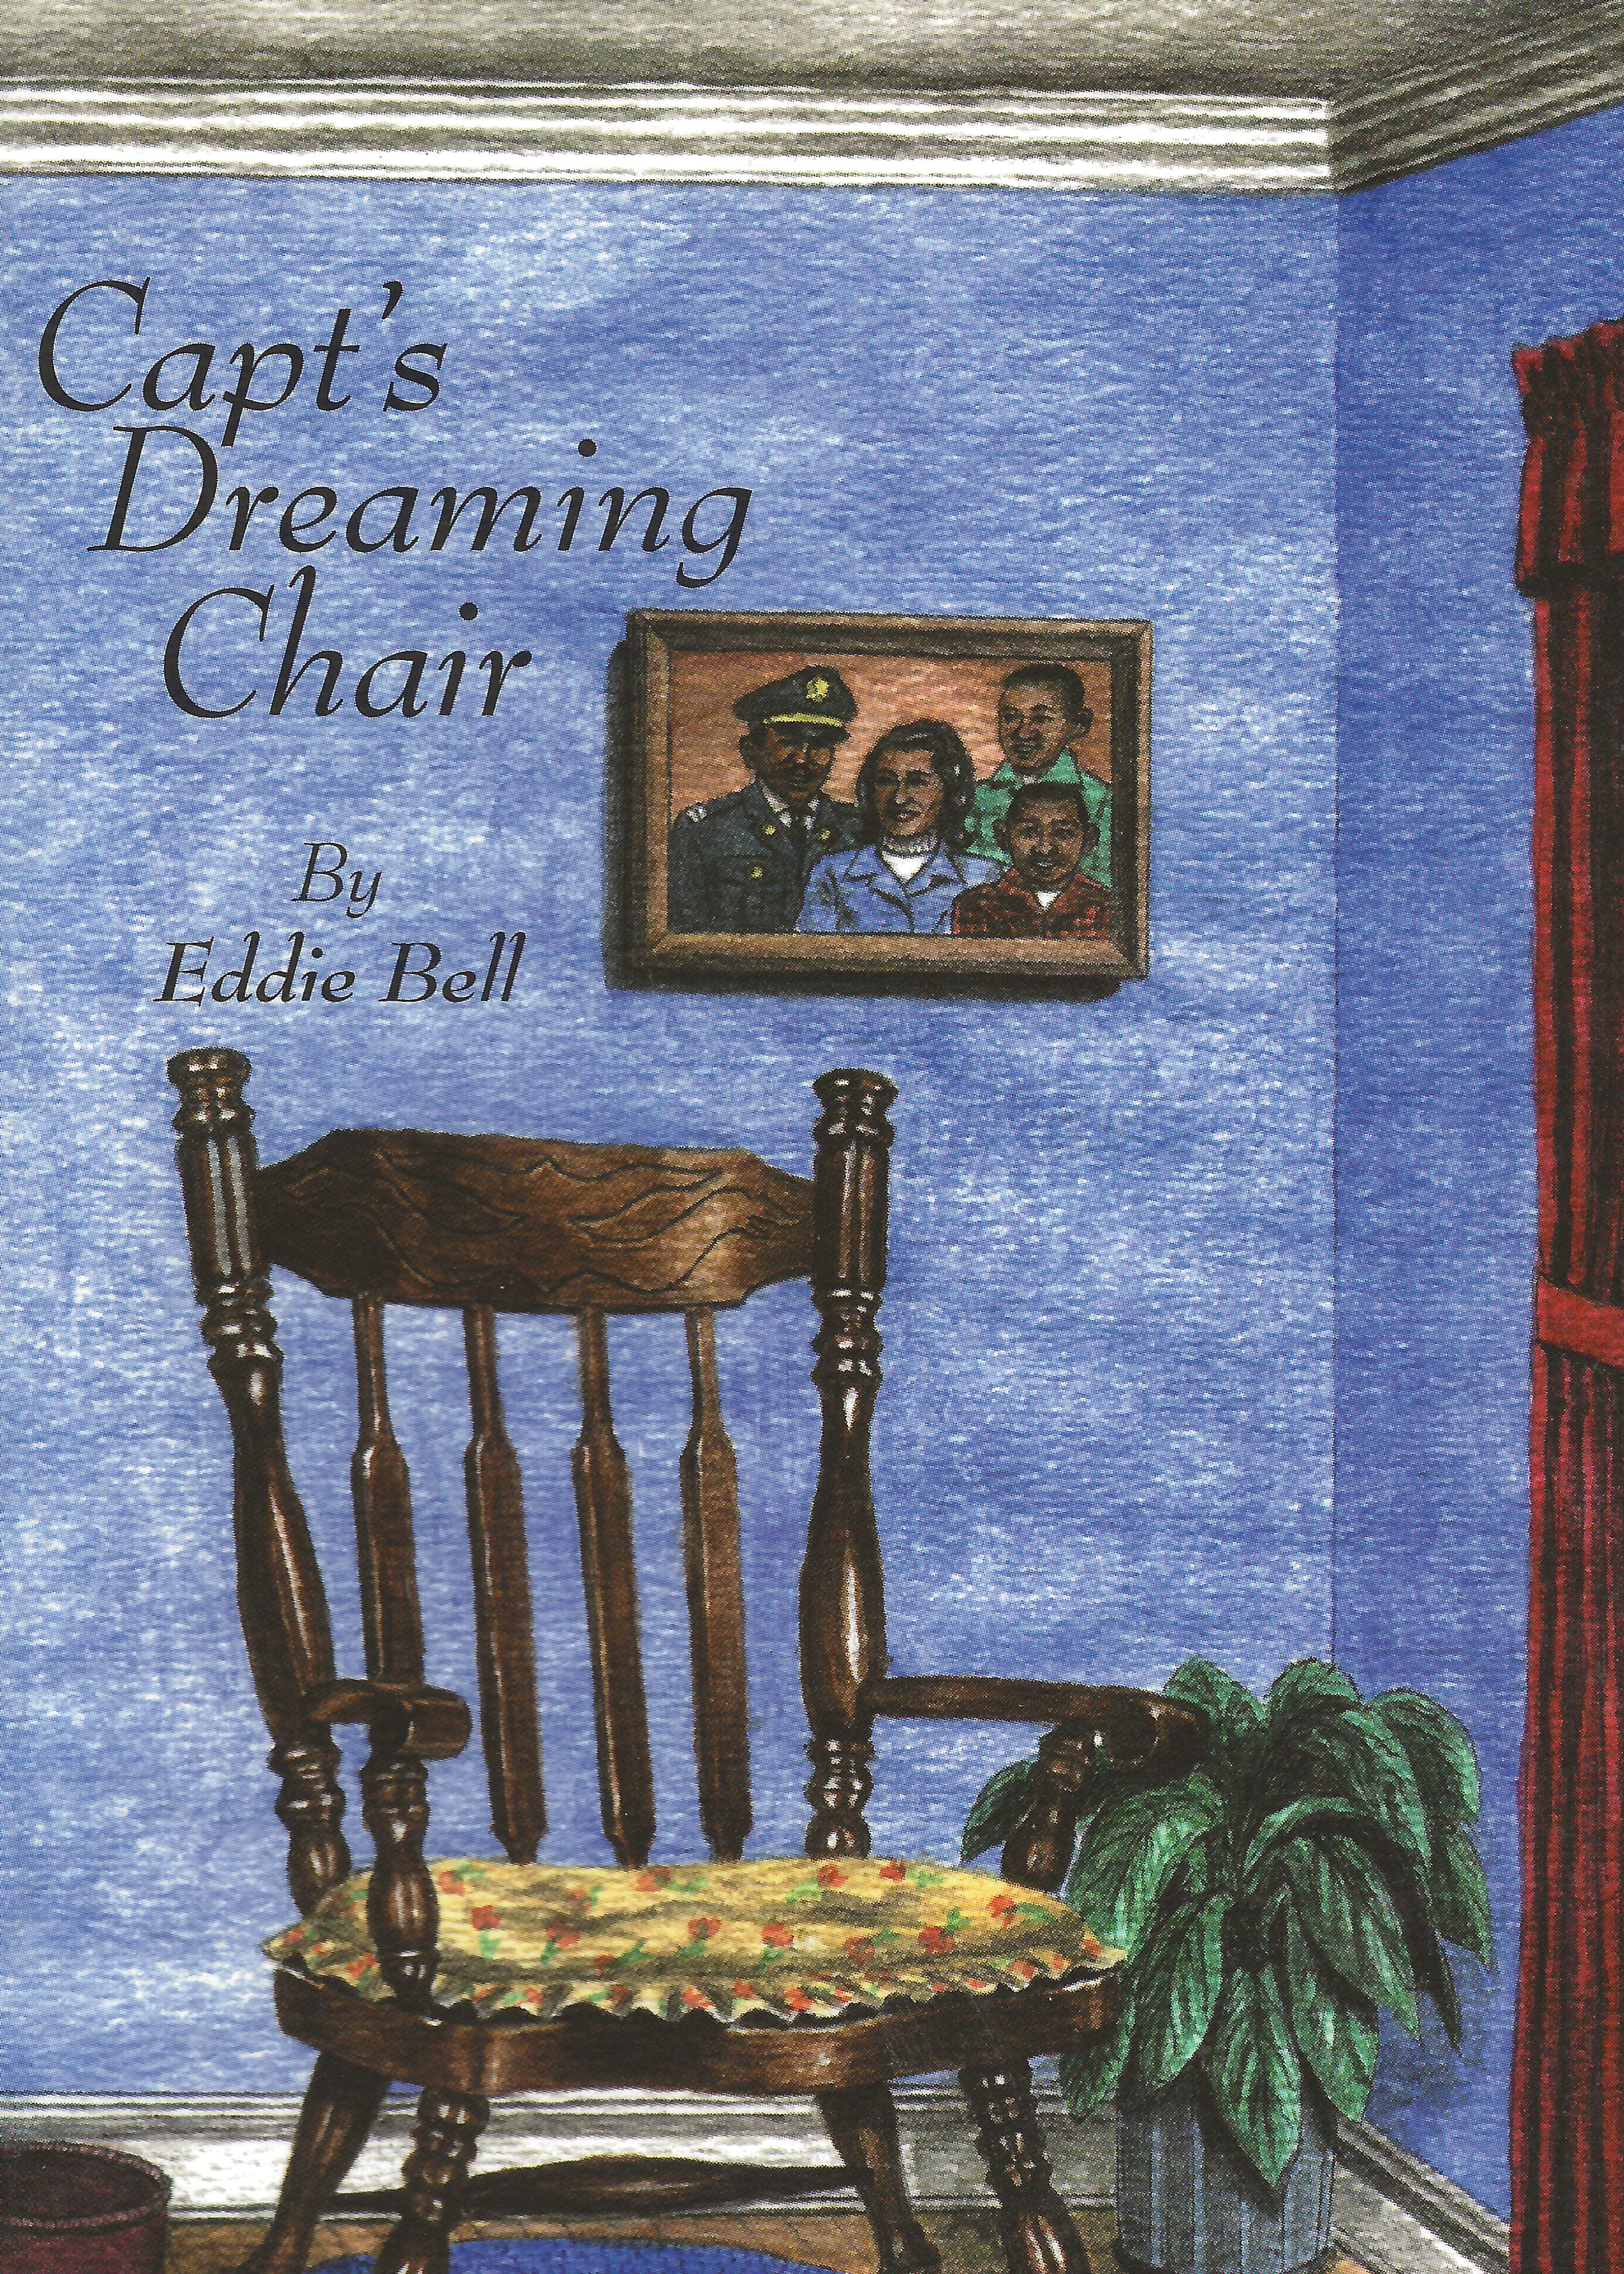 CAPT'S DREAMING CHAIR